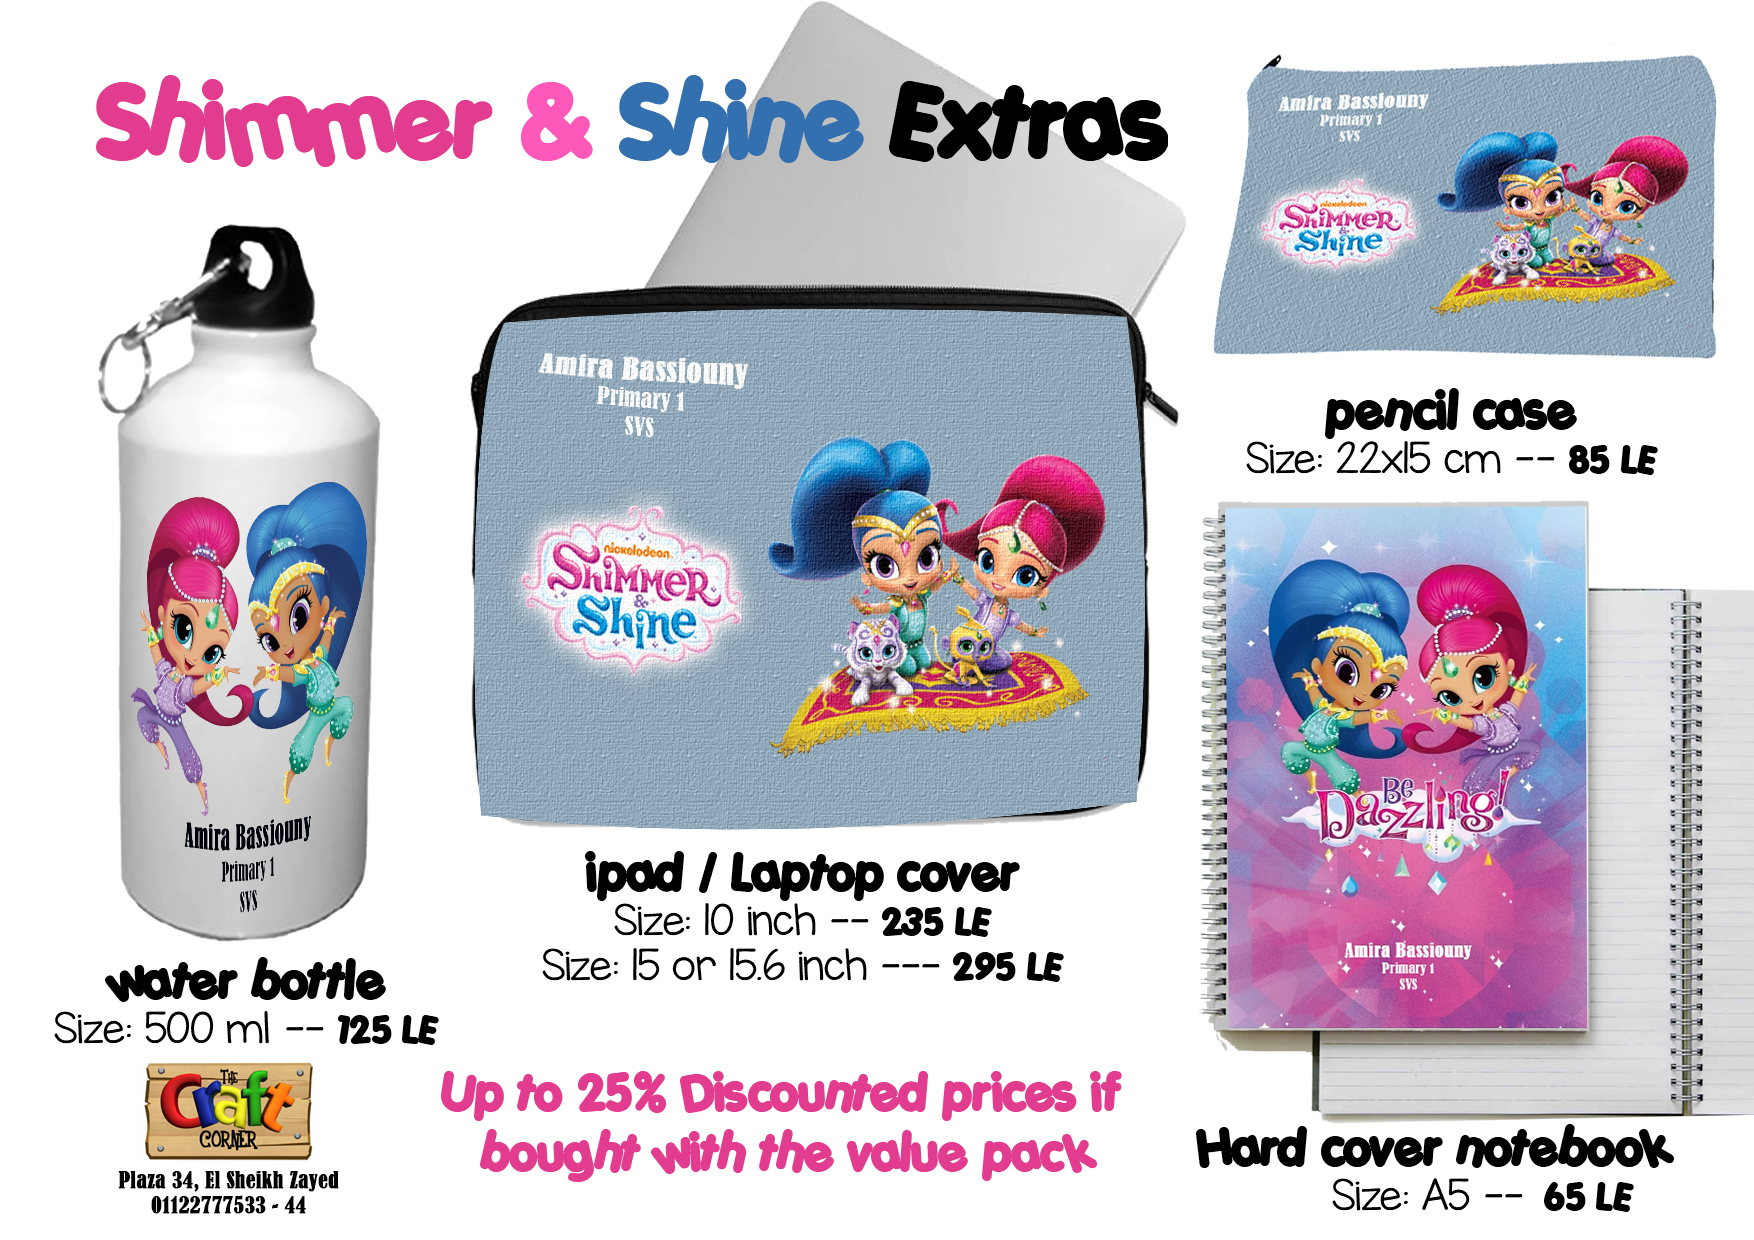 shimmer & shine Extras